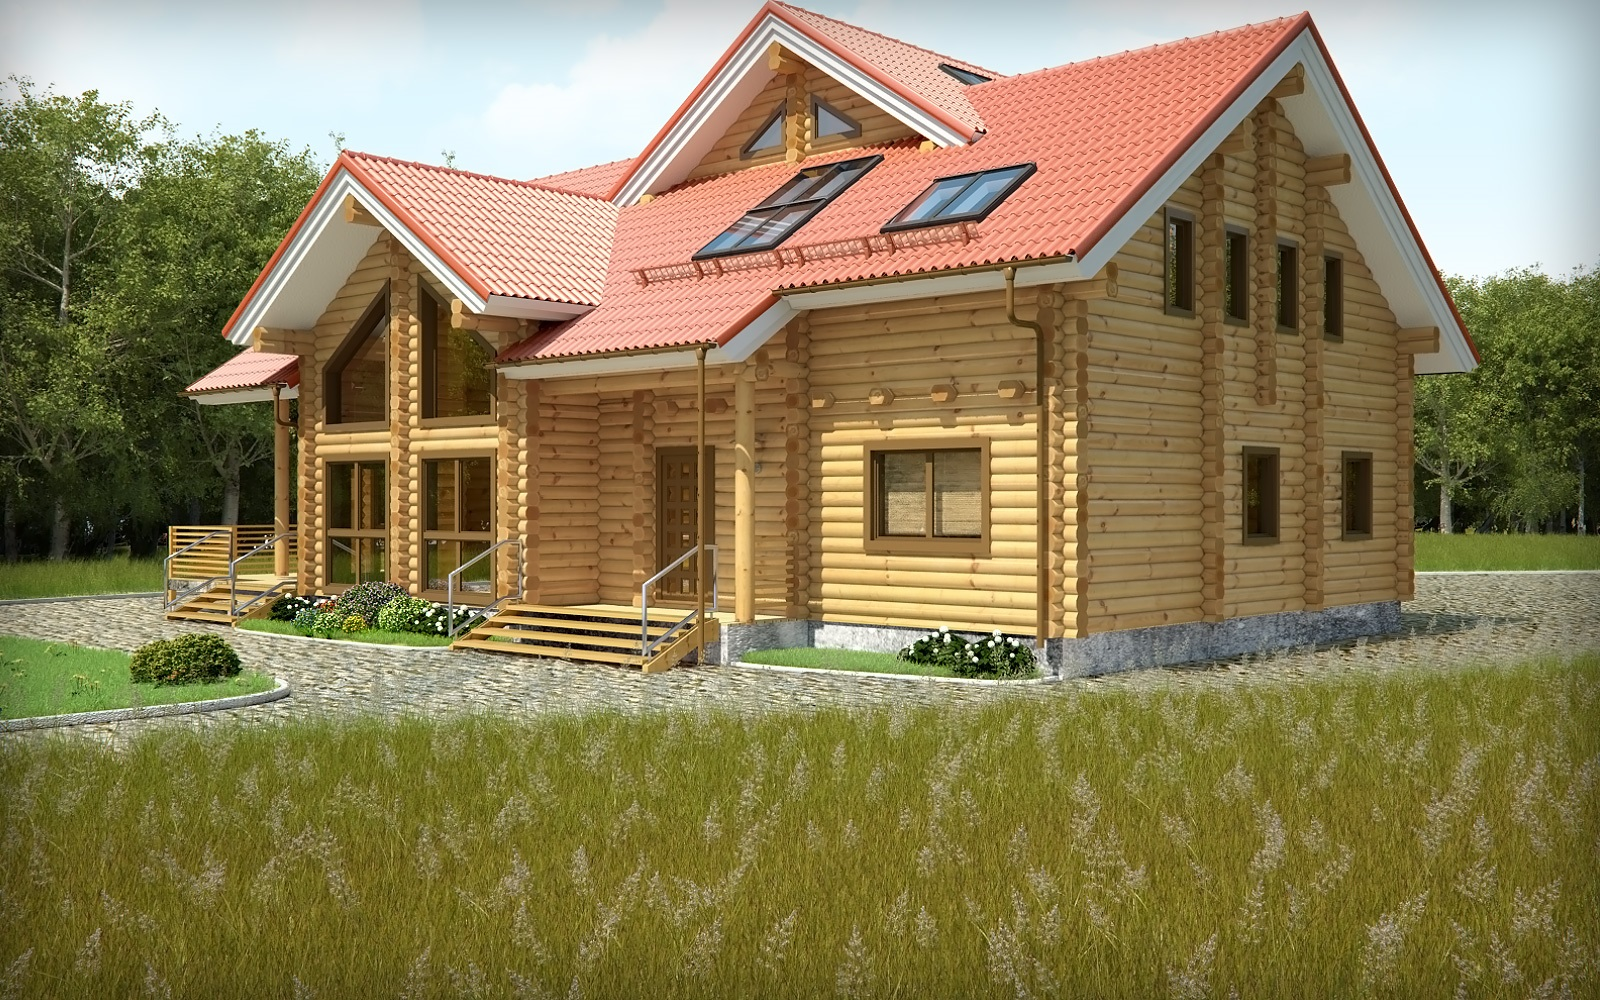 wooden country house design photo - 2